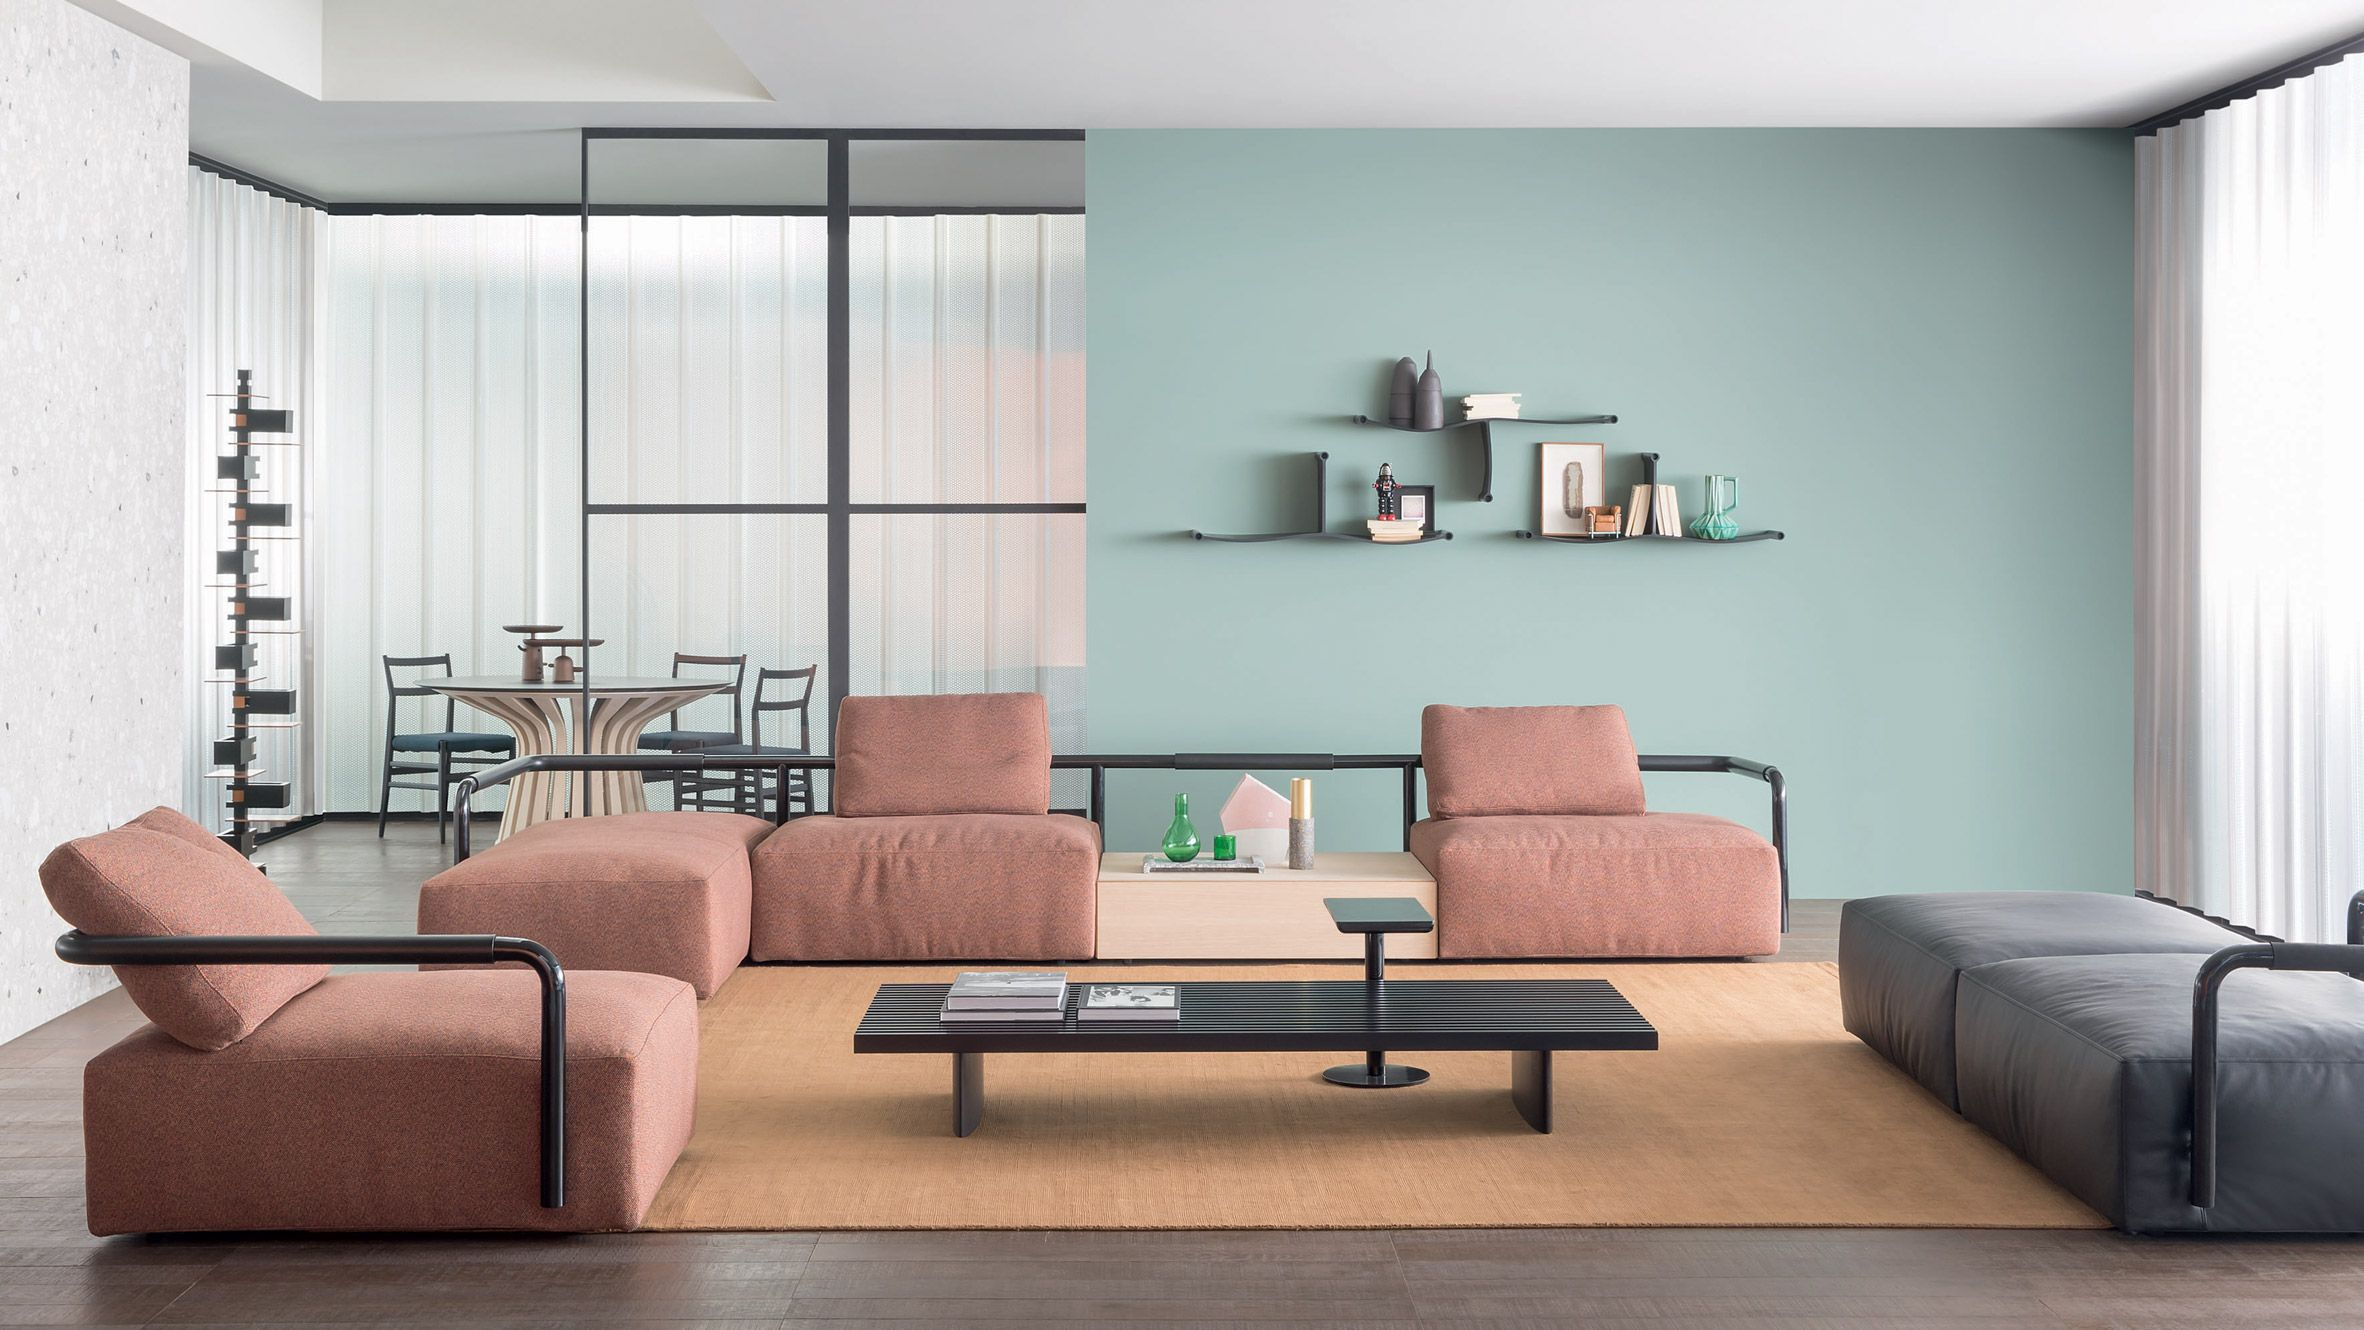 The Soft Props sofa by Cassina references handrails from the Milan